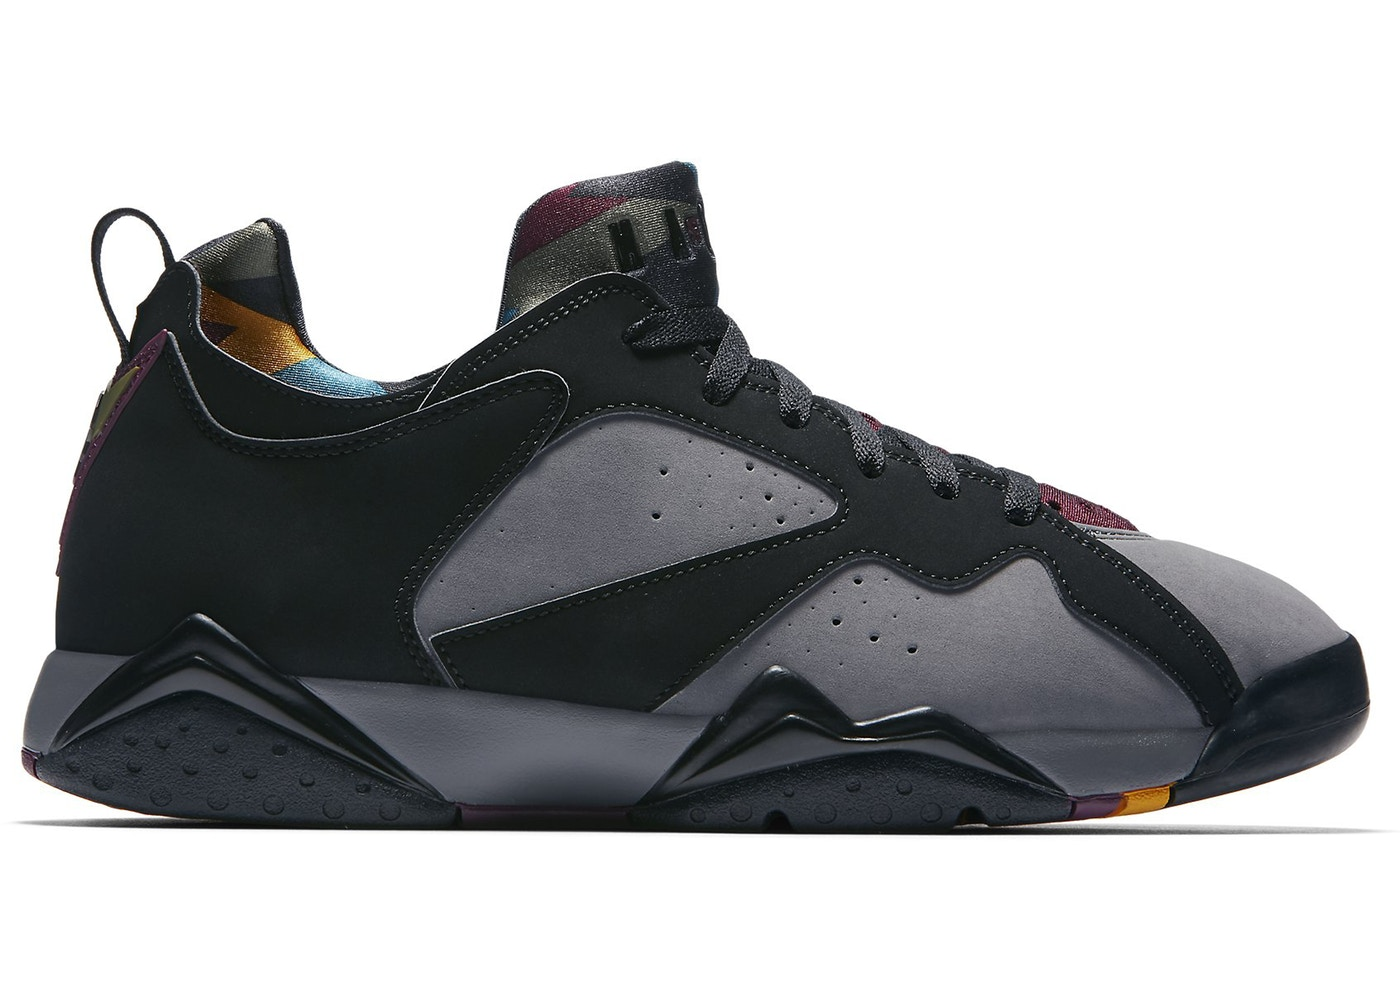 finest selection 0917c 42897 Jordan 7 Retro Low Bordeaux